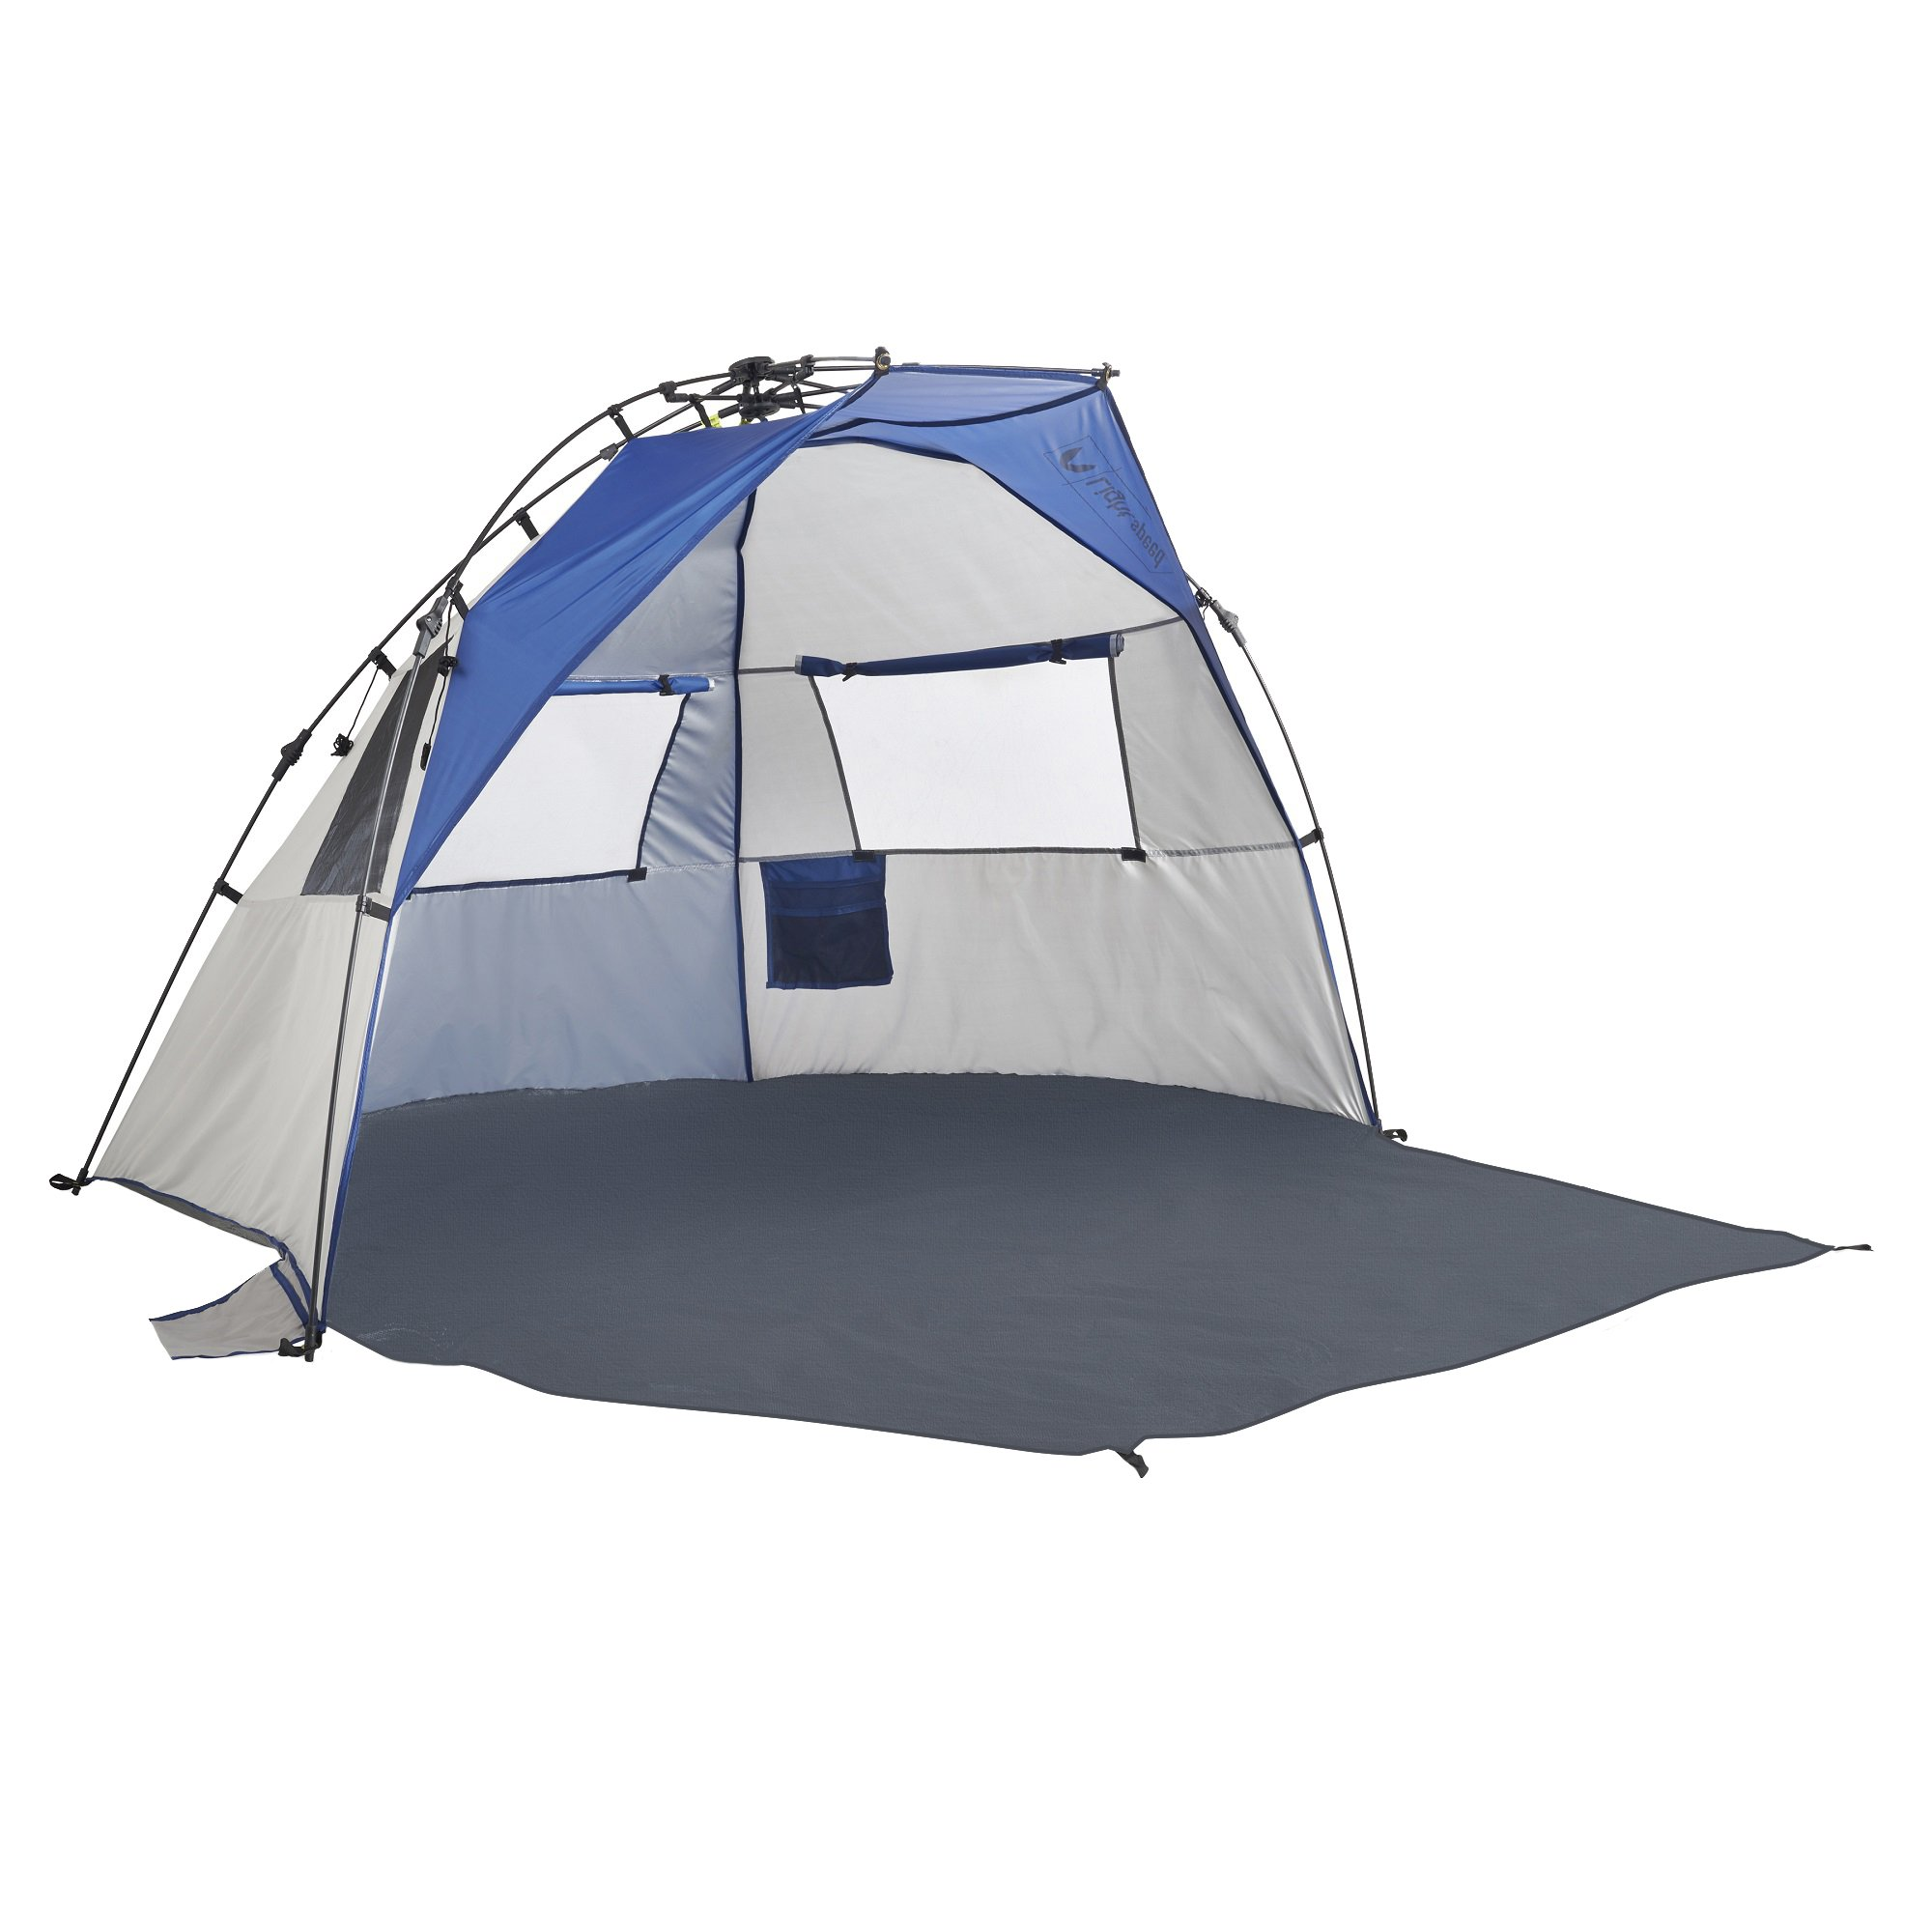 Lightspeed Outdoors Quick Cabana Beach Tent Sun Shelter, Blue by Lightspeed Outdoors